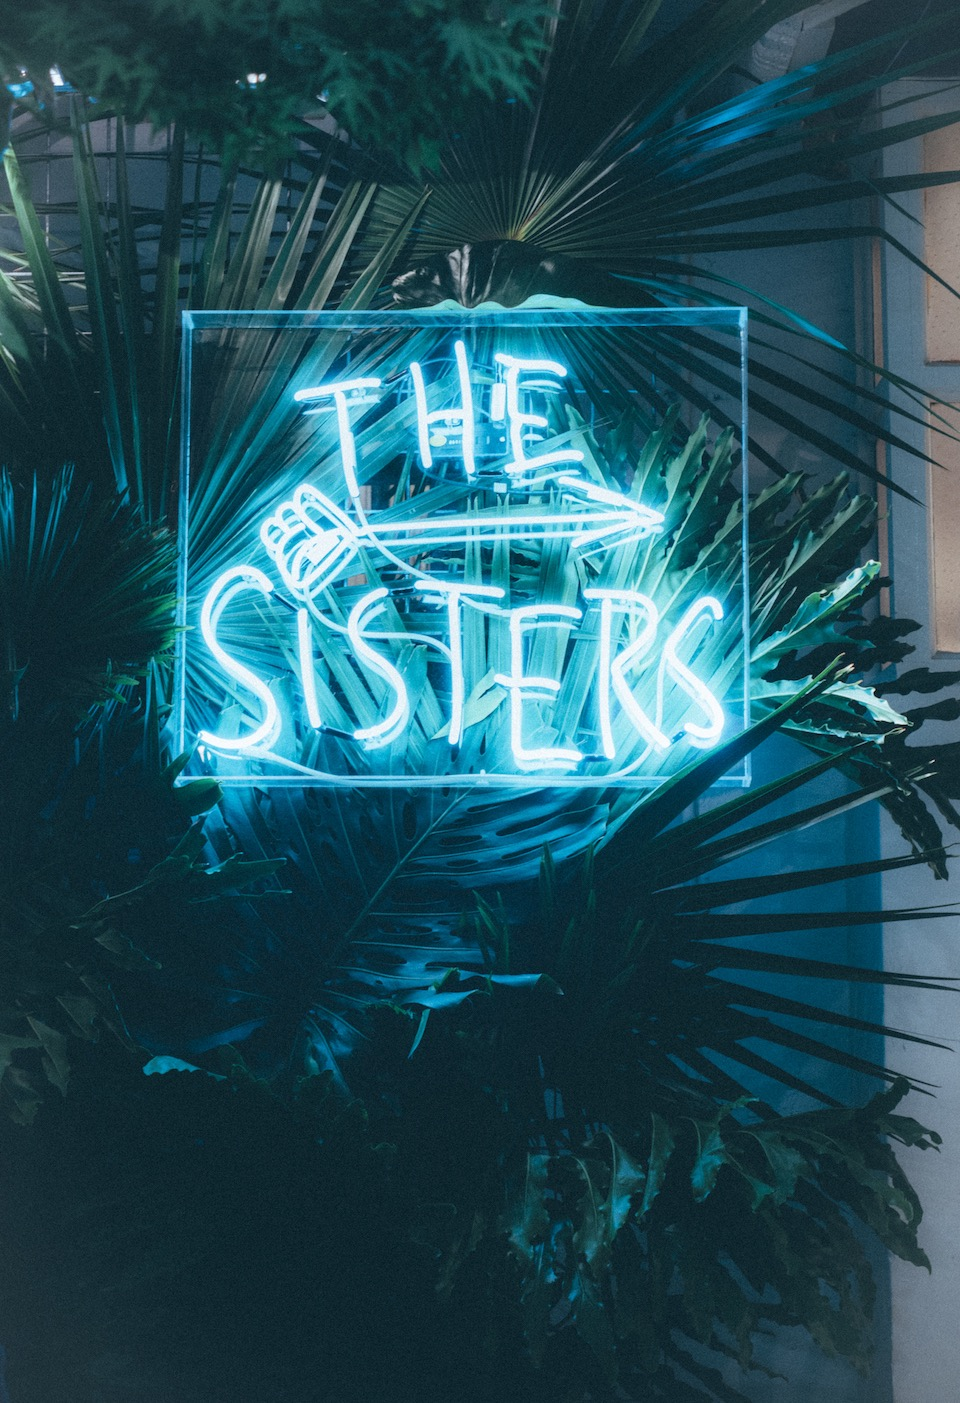 20151024_thesisters-14.jpeg